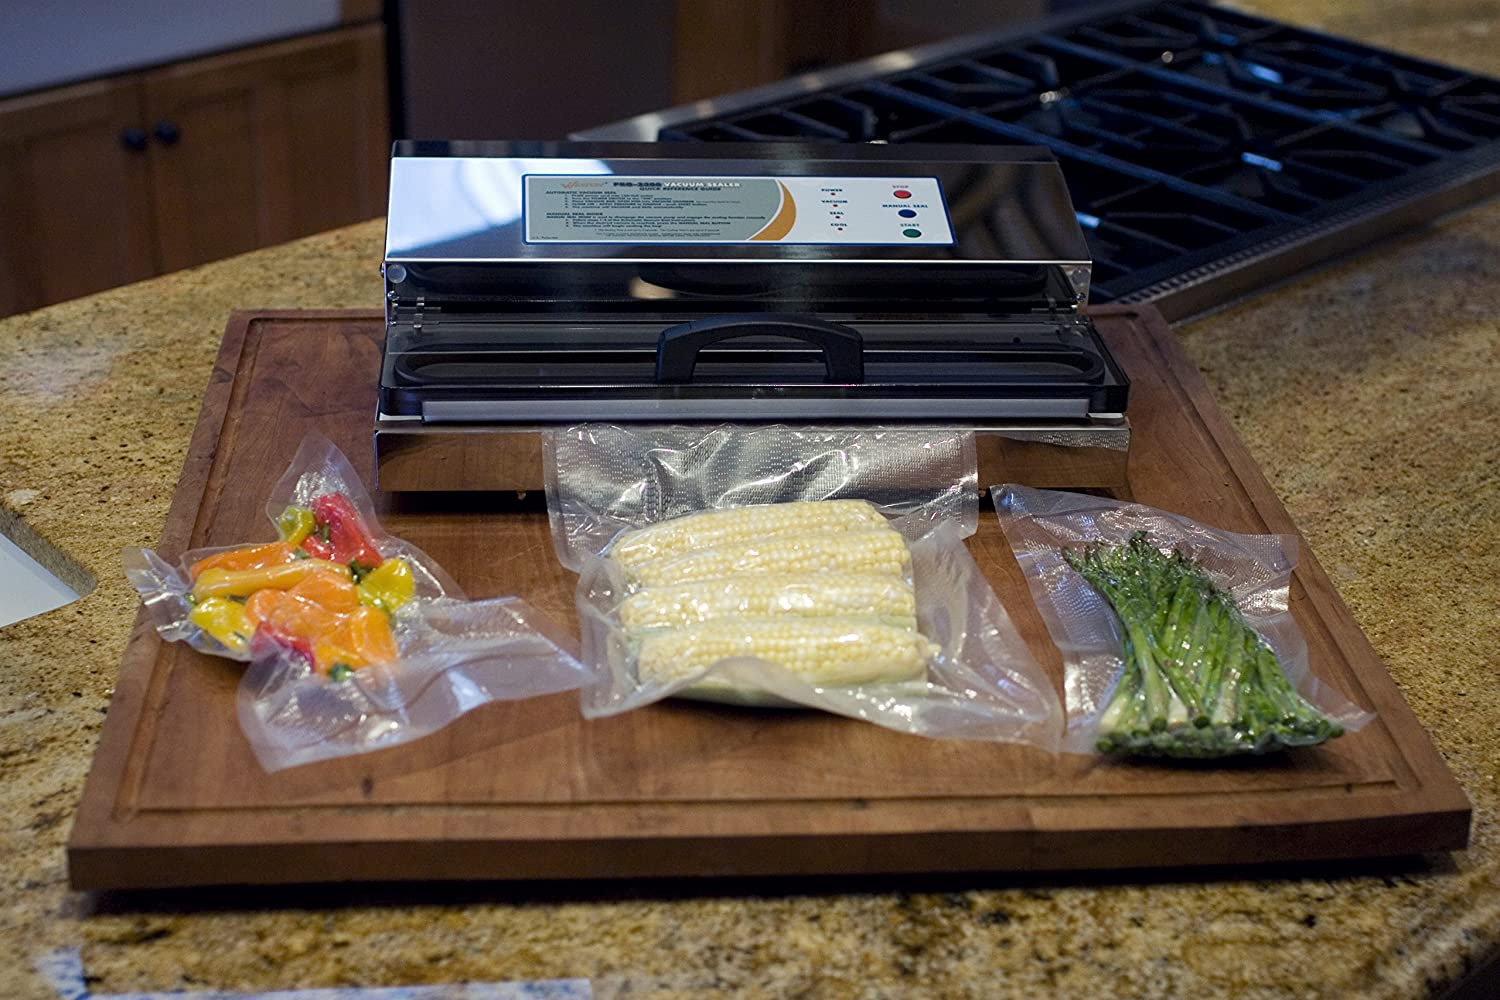 Weston 65-0201 Pro-2300 is the best vacuum food sealer on our list but will cost you a hefty $380.